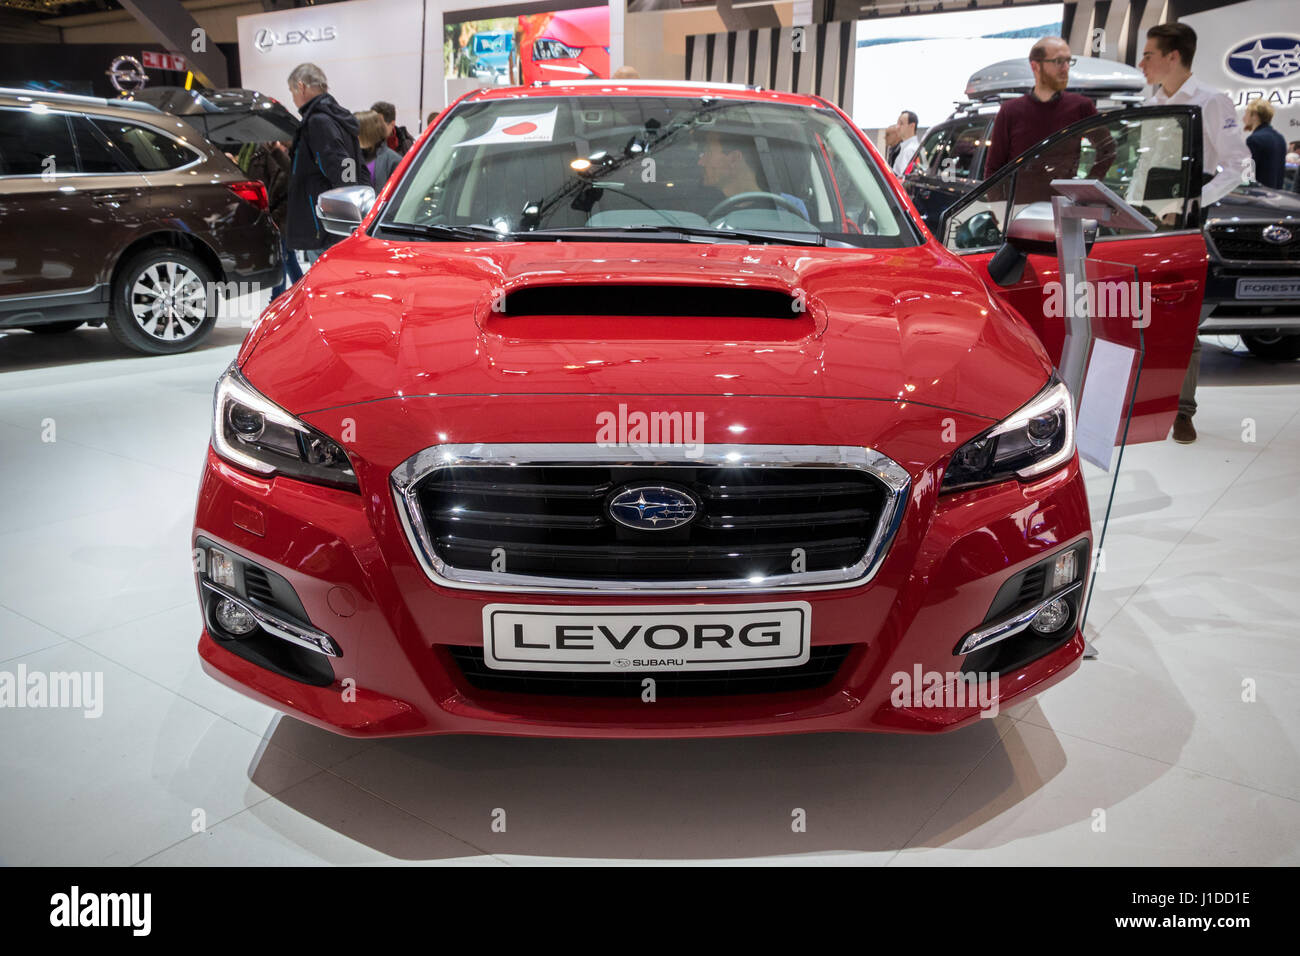 BRUSSELS - JAN 19, 2017: Subaru Levorg car at the Brussels Auto Salon. - Stock Image